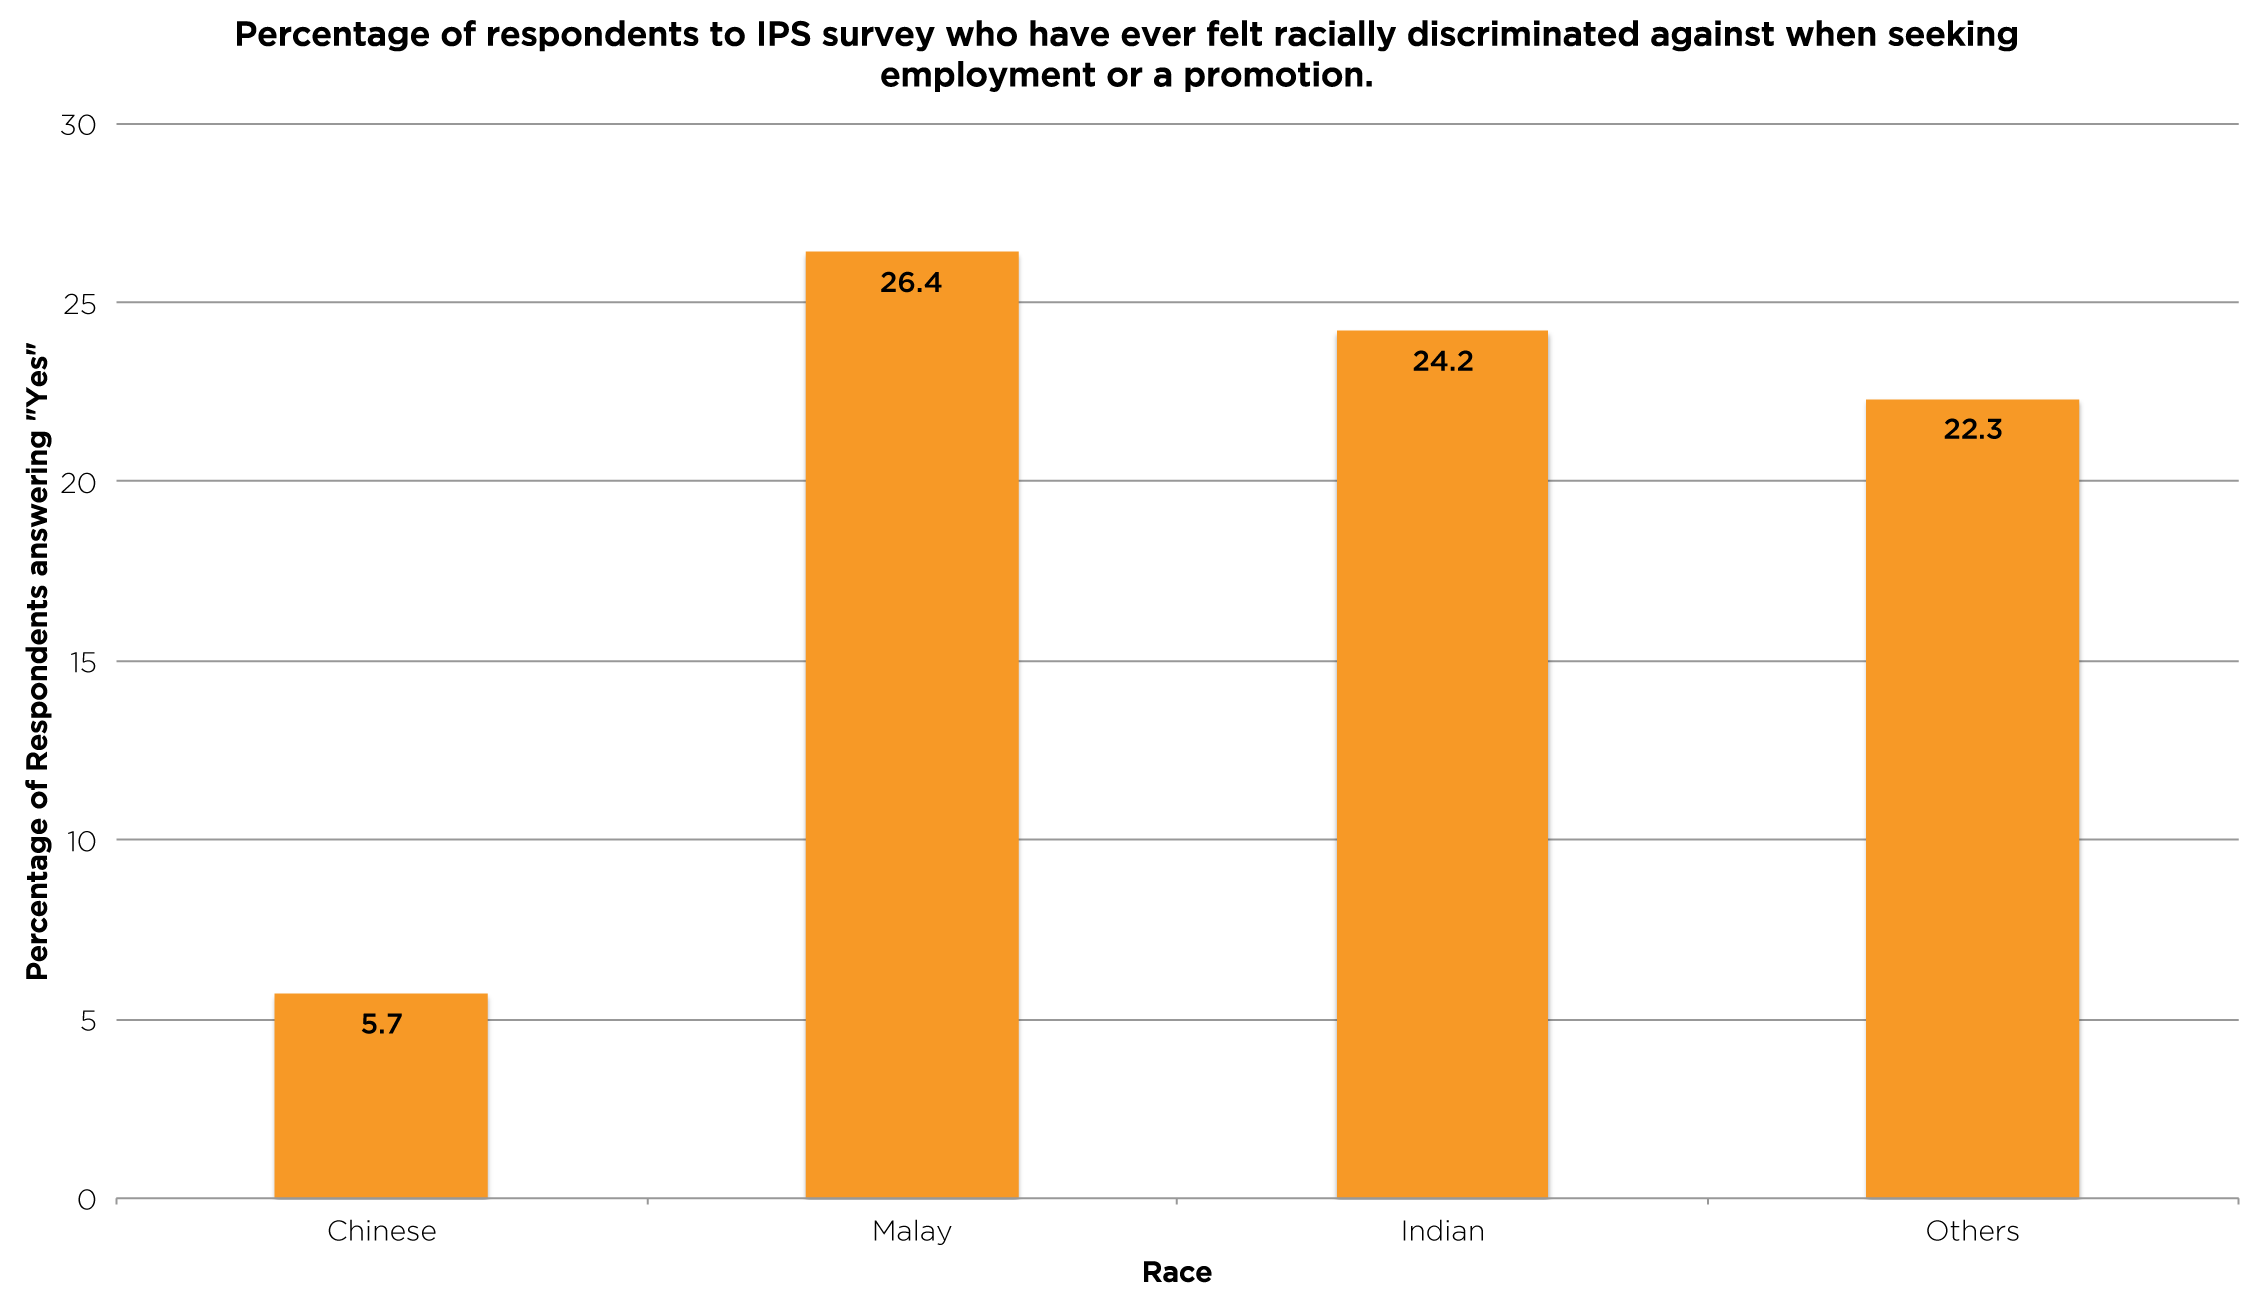 A recent IPS survey that found that one in four non-Chinese Singaporeans have felt racially discriminated against when seeking employment or a promotion, suggesting that Chinese Privilege does exist in the job market.